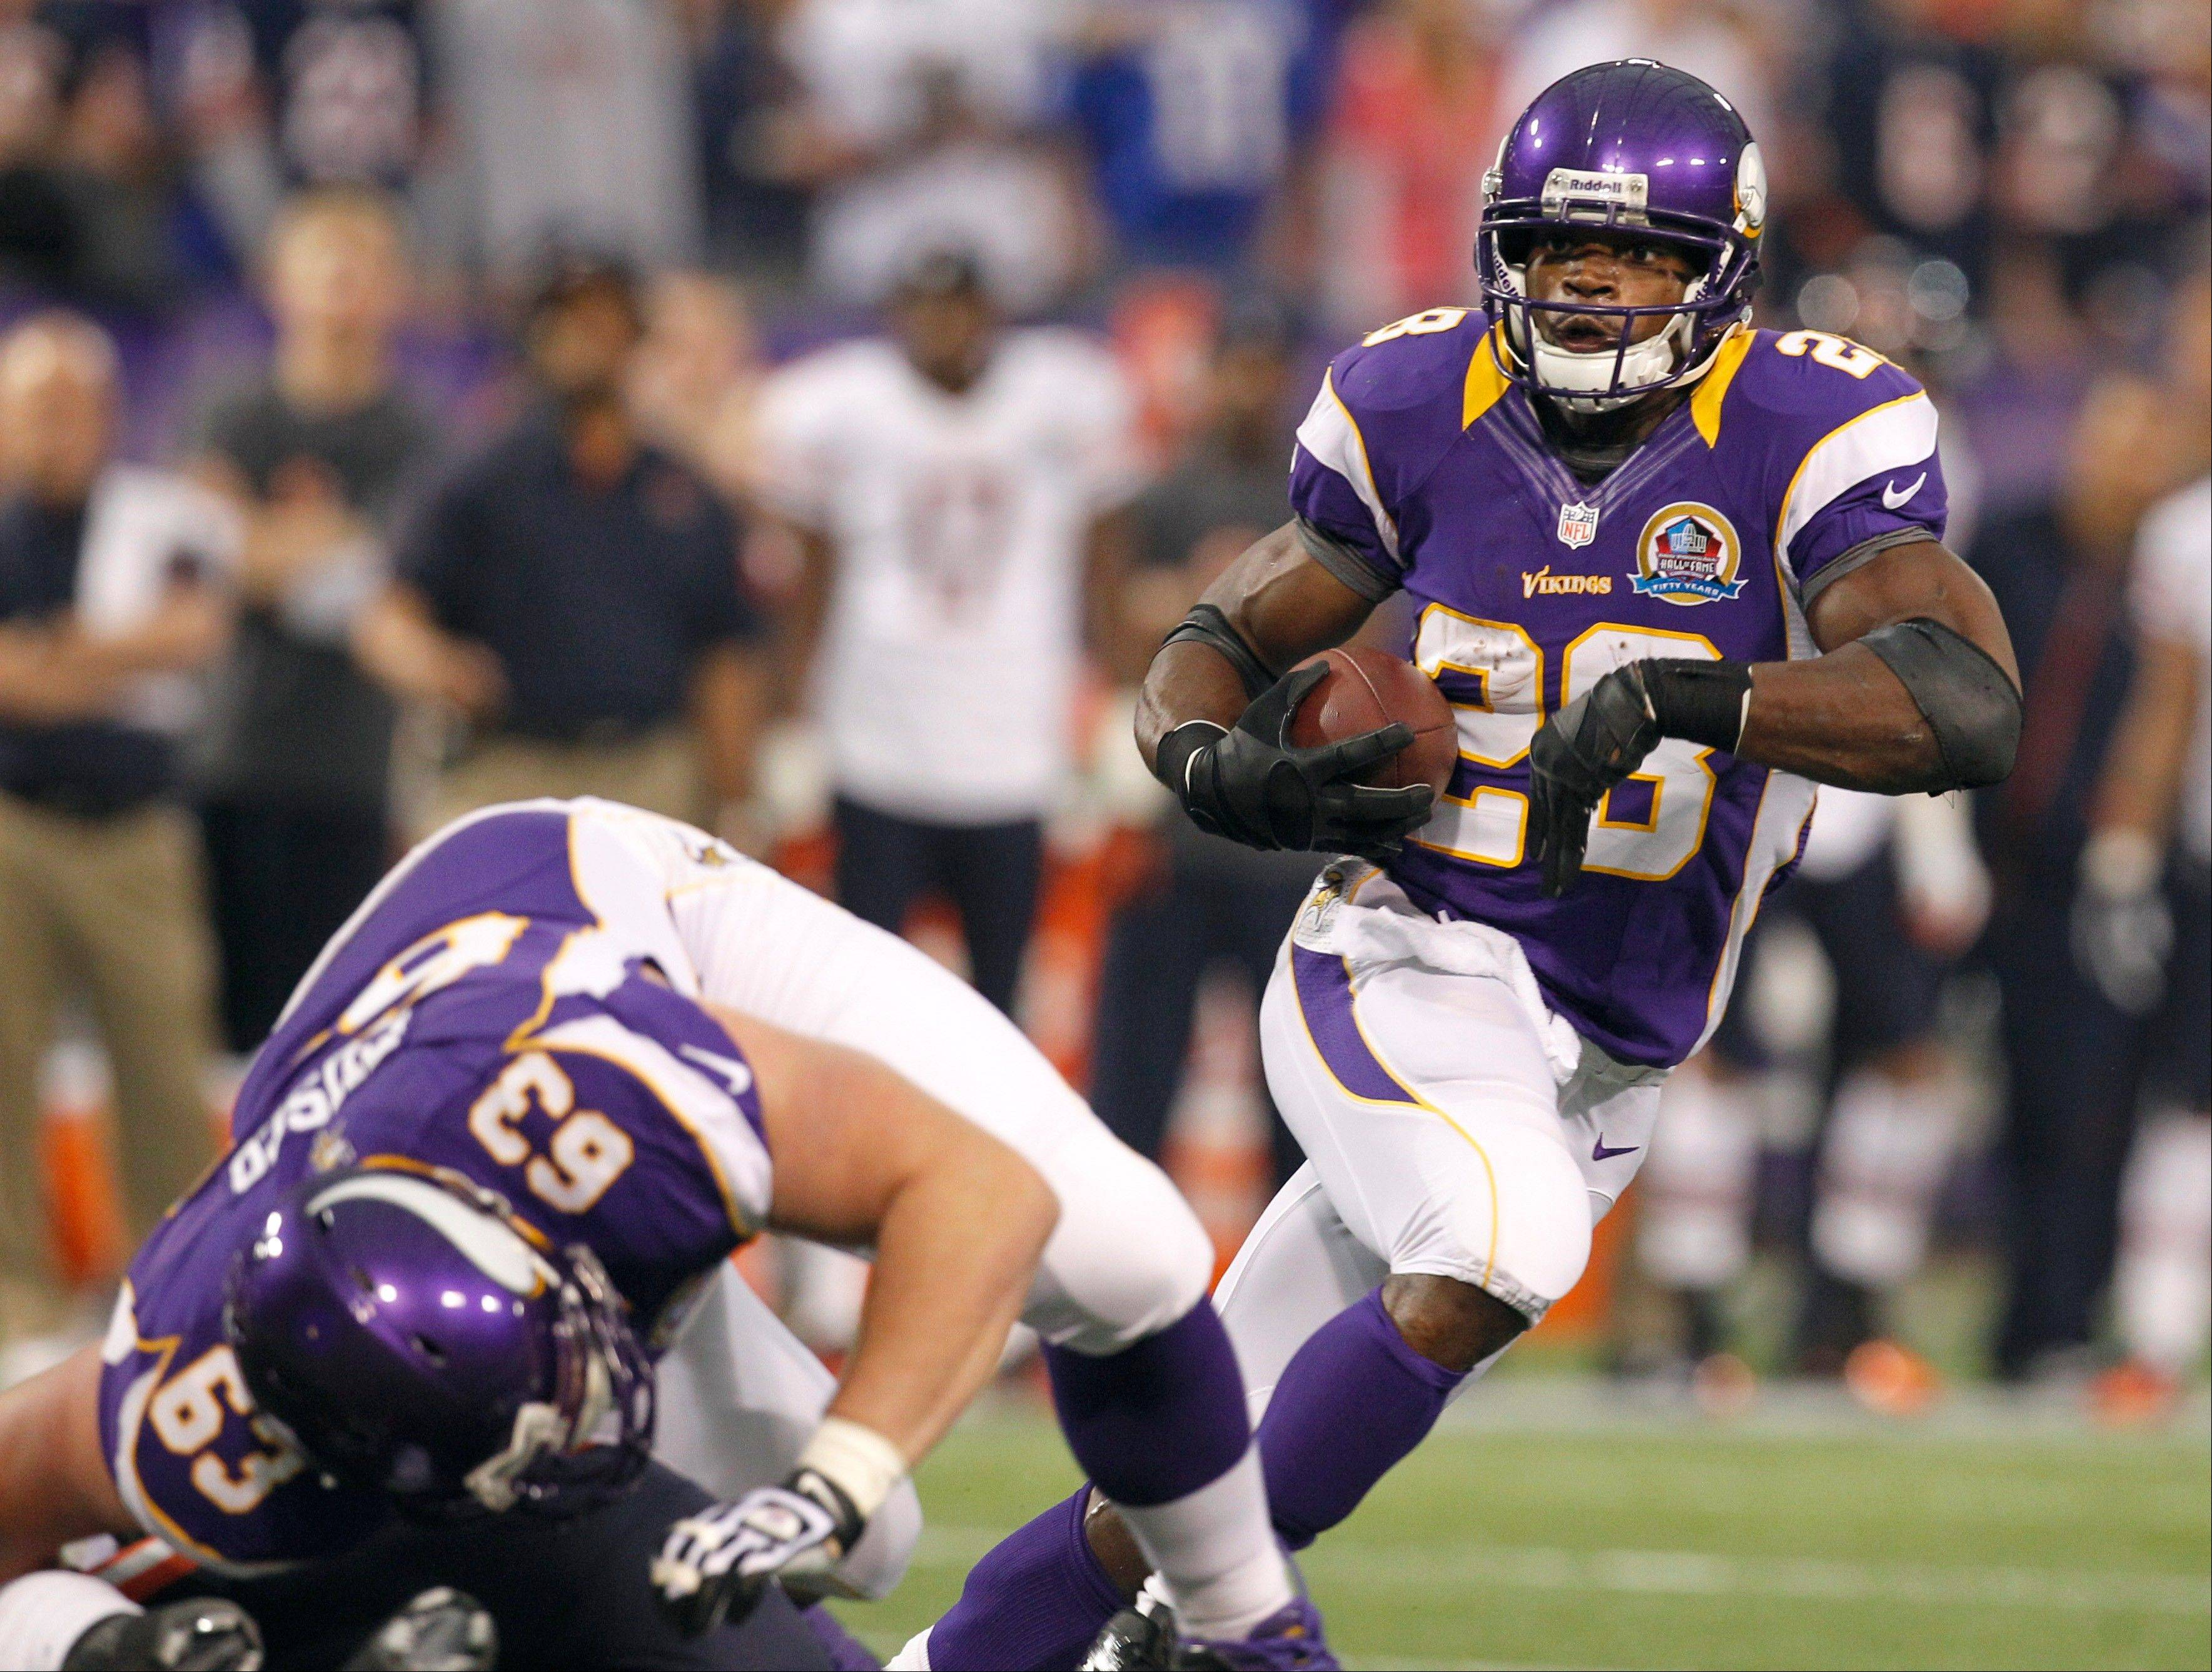 Minnesota Vikings running back Adrian Peterson, right, carries the ball during the first half.